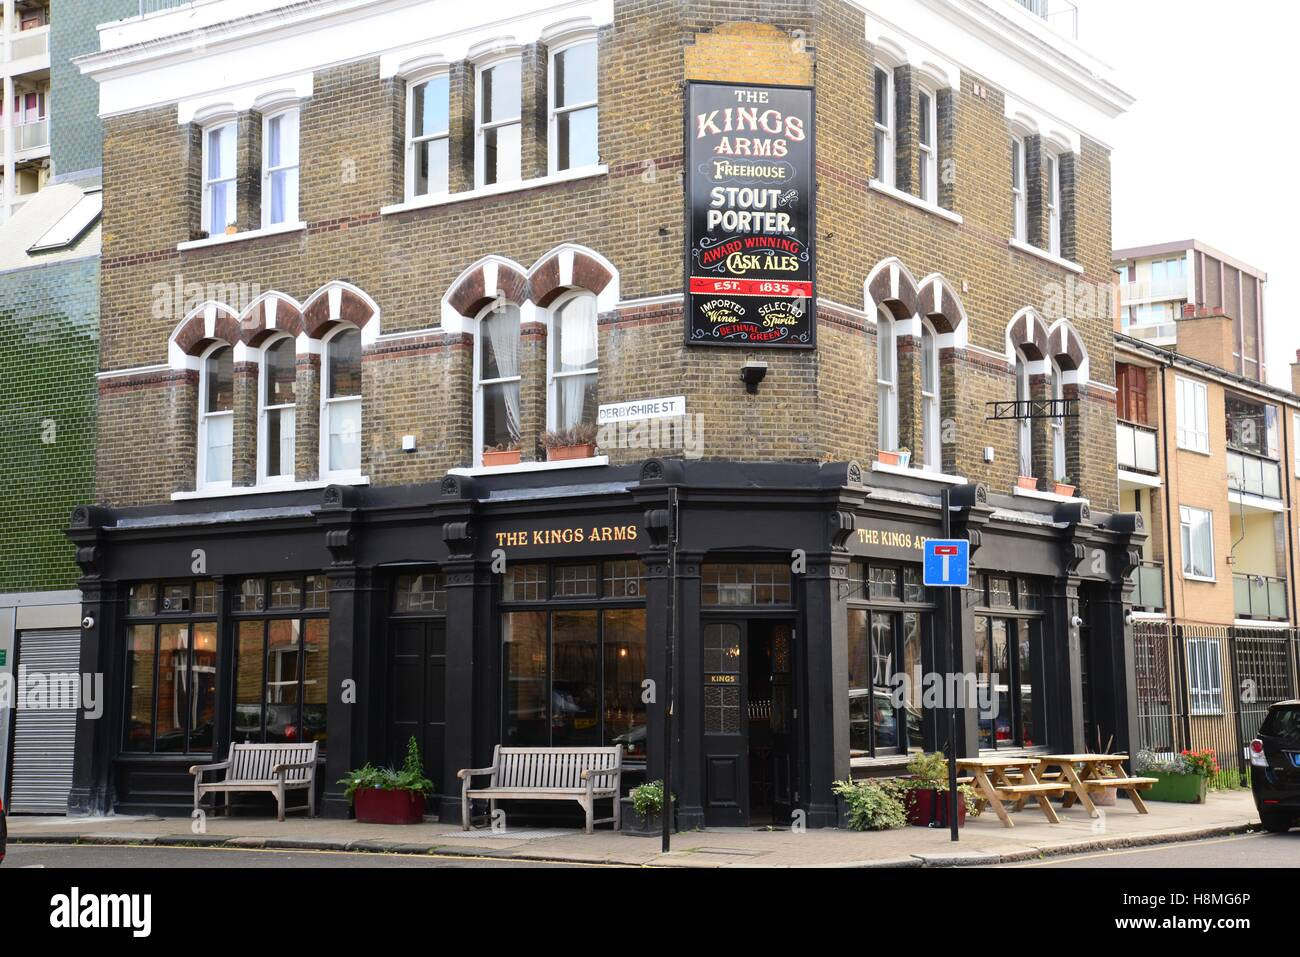 The Kings Arms pub, Bethnal Green, London, England - Stock Image